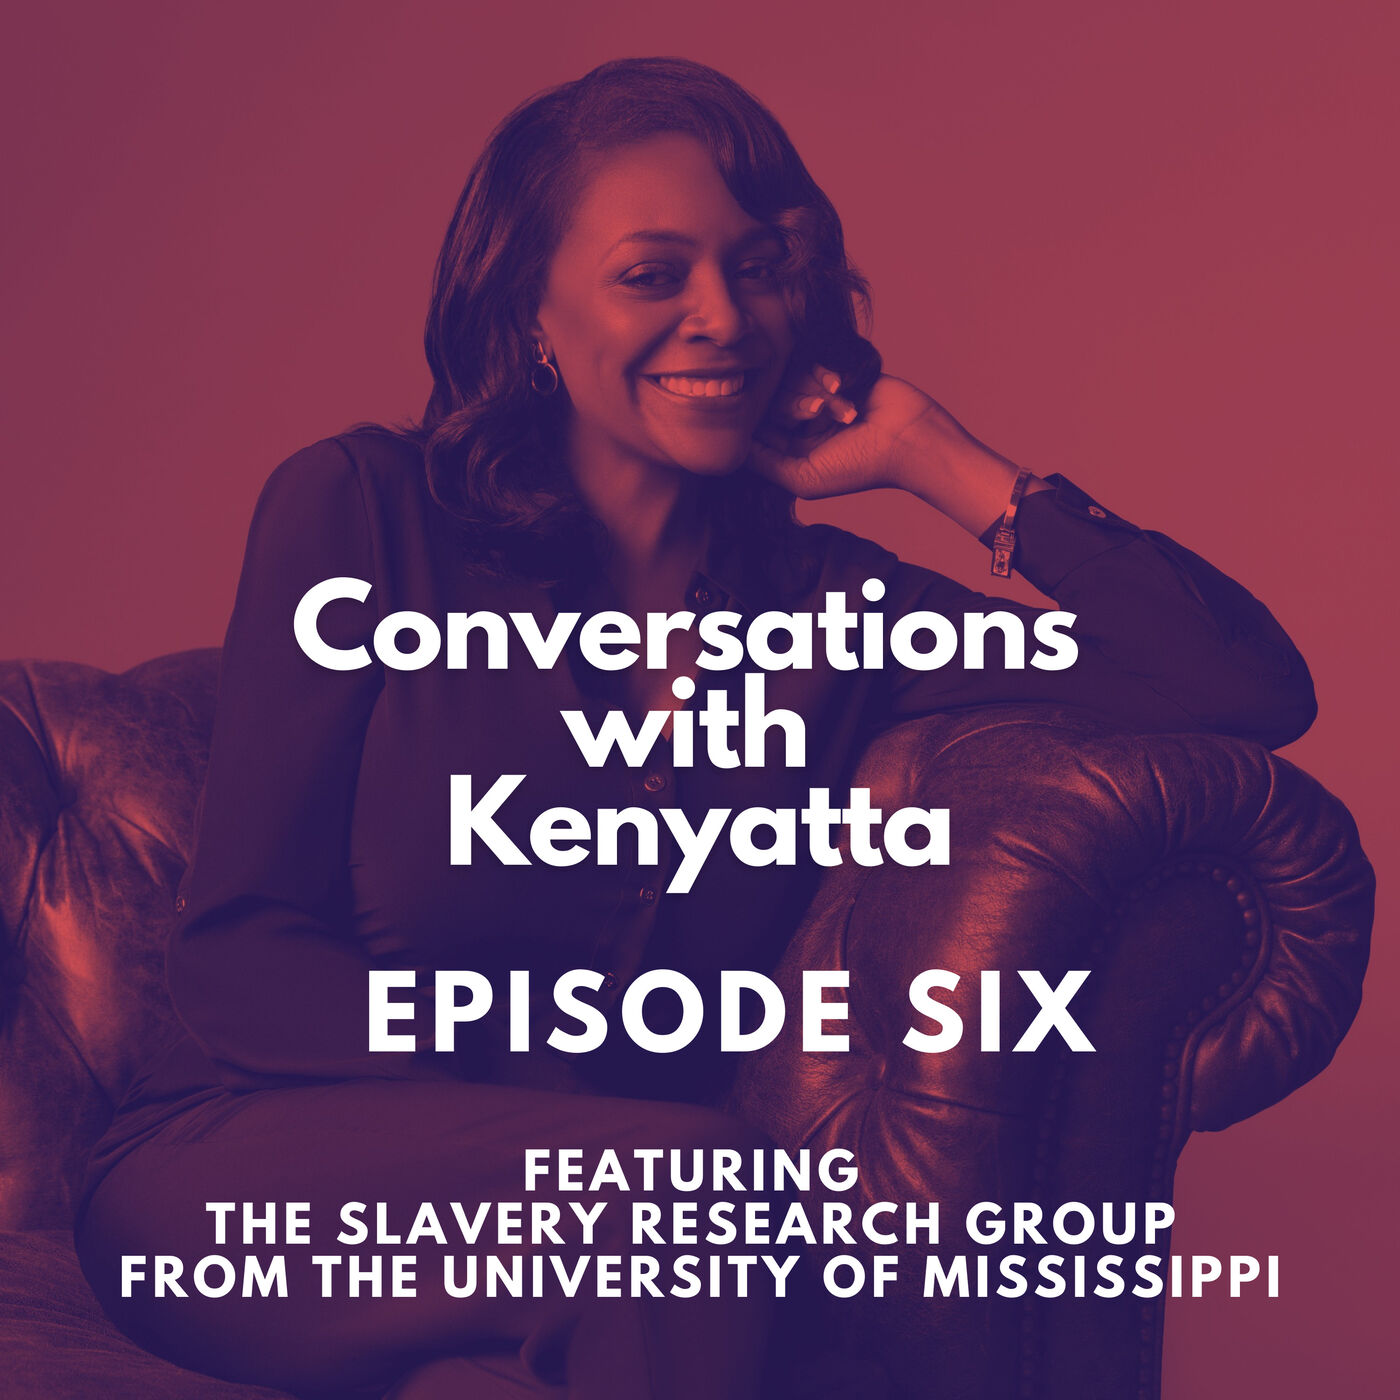 A Conversation with the Slavery Research Group at the University of Mississippi